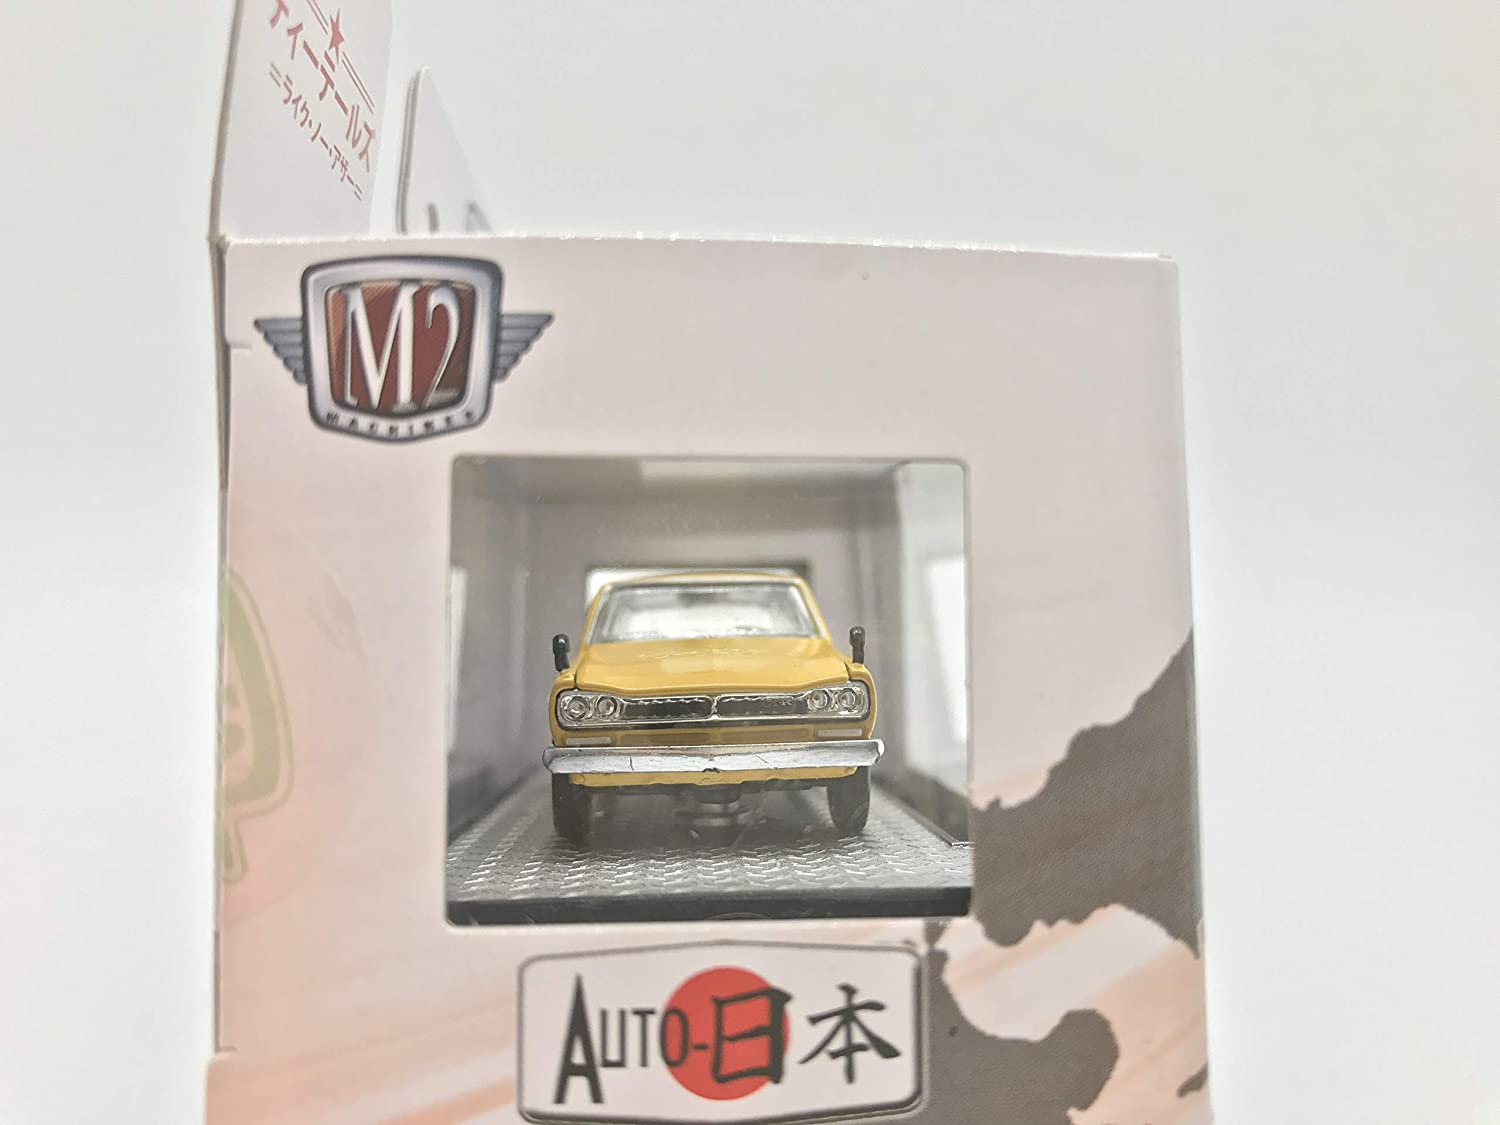 M2 Machines by M2 Collectible Auto-Japan 1971 Nissan Skyline GT-R WMTS05 17-13 Yellow Details Like NO Other 1 of 8800